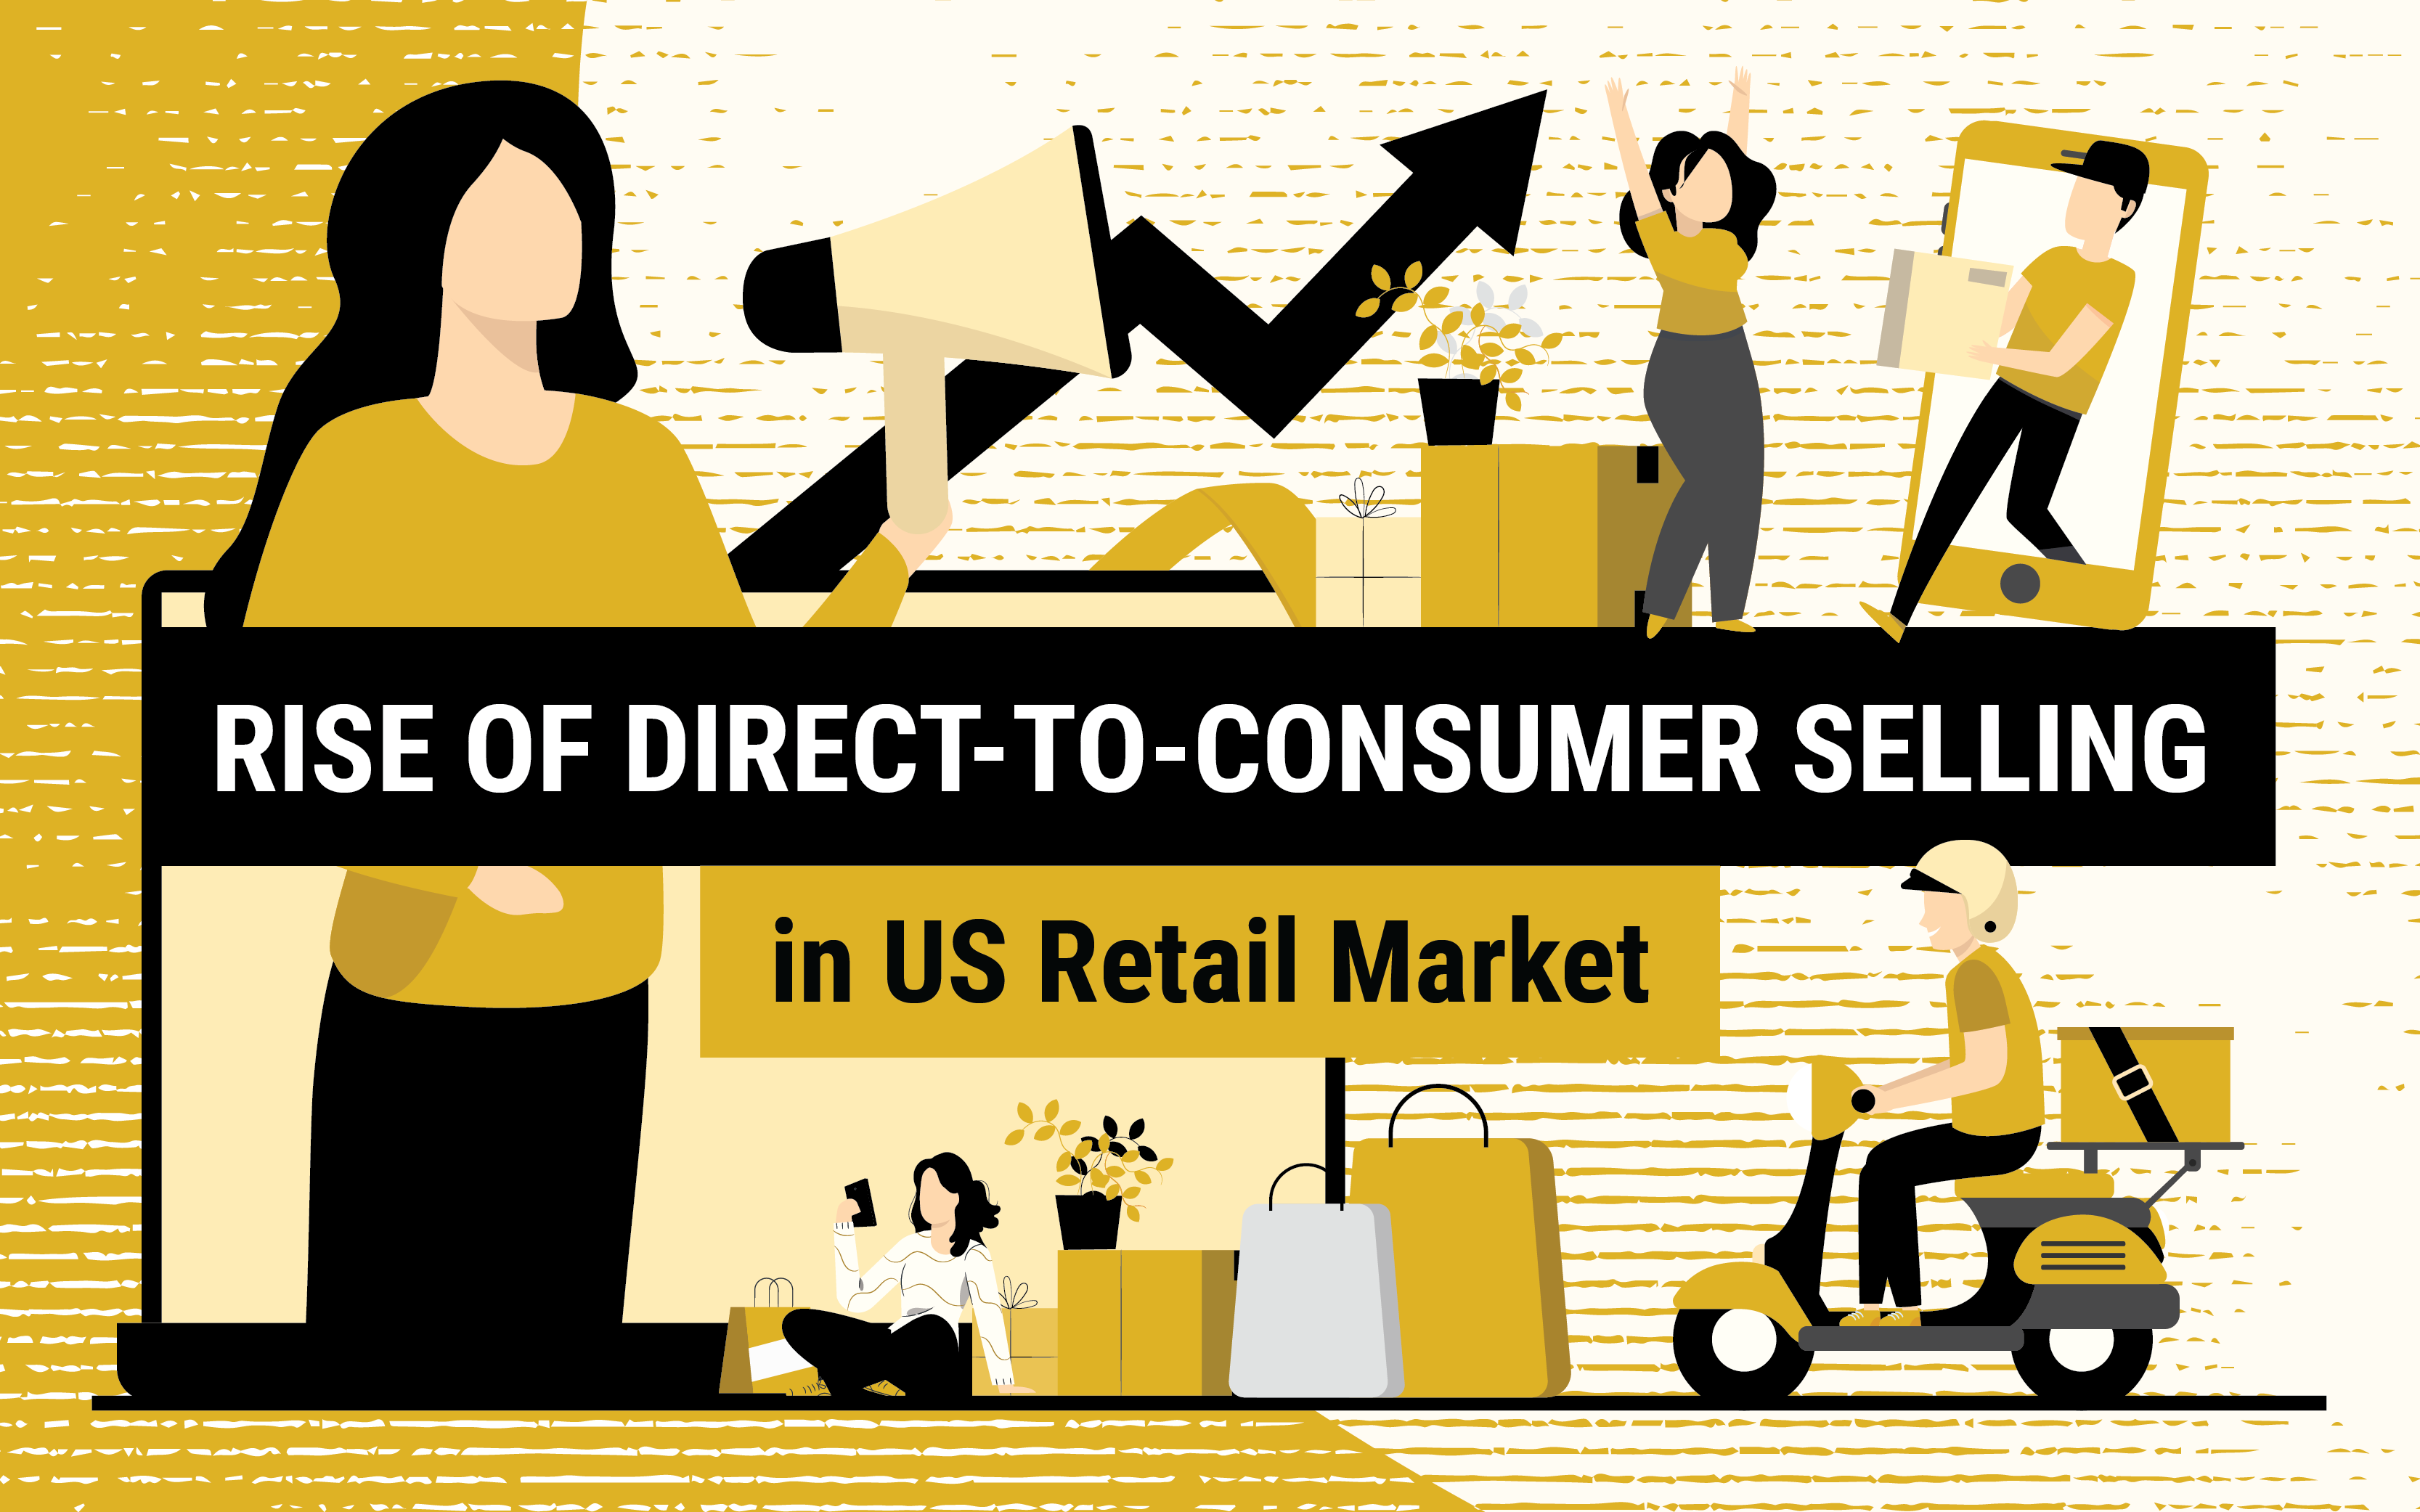 Rise Of Direct-to-Consumer Selling In US Retail Market